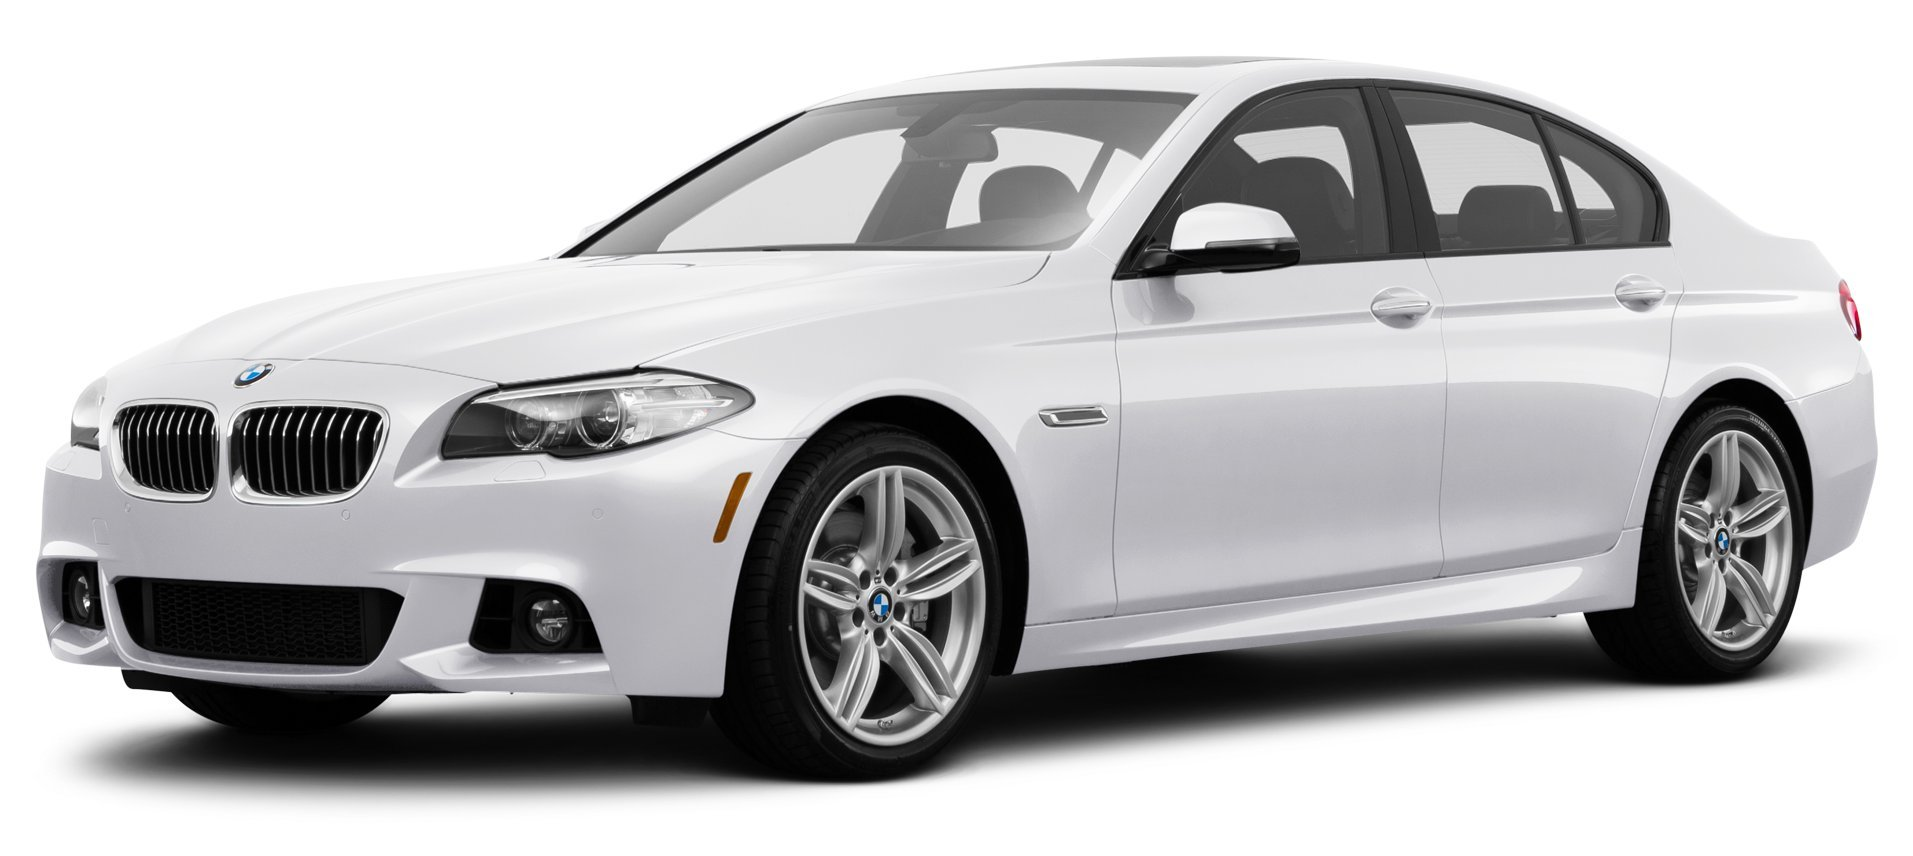 Amazon Com 2016 Bmw 535i Reviews Images And Specs Vehicles